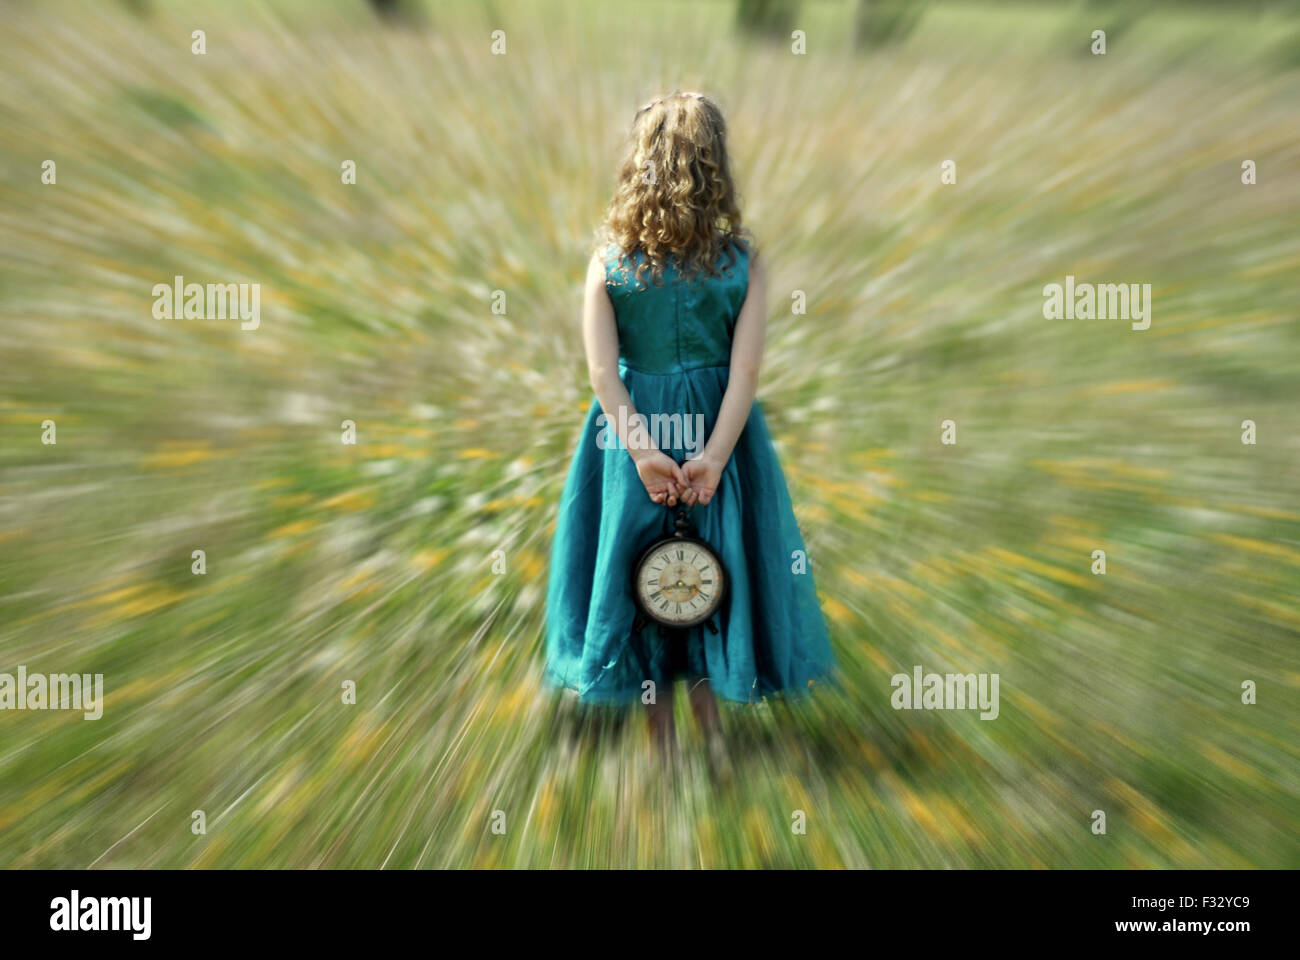 zoom effect little girl with clock in her hands blue dress wonderland - Stock Image